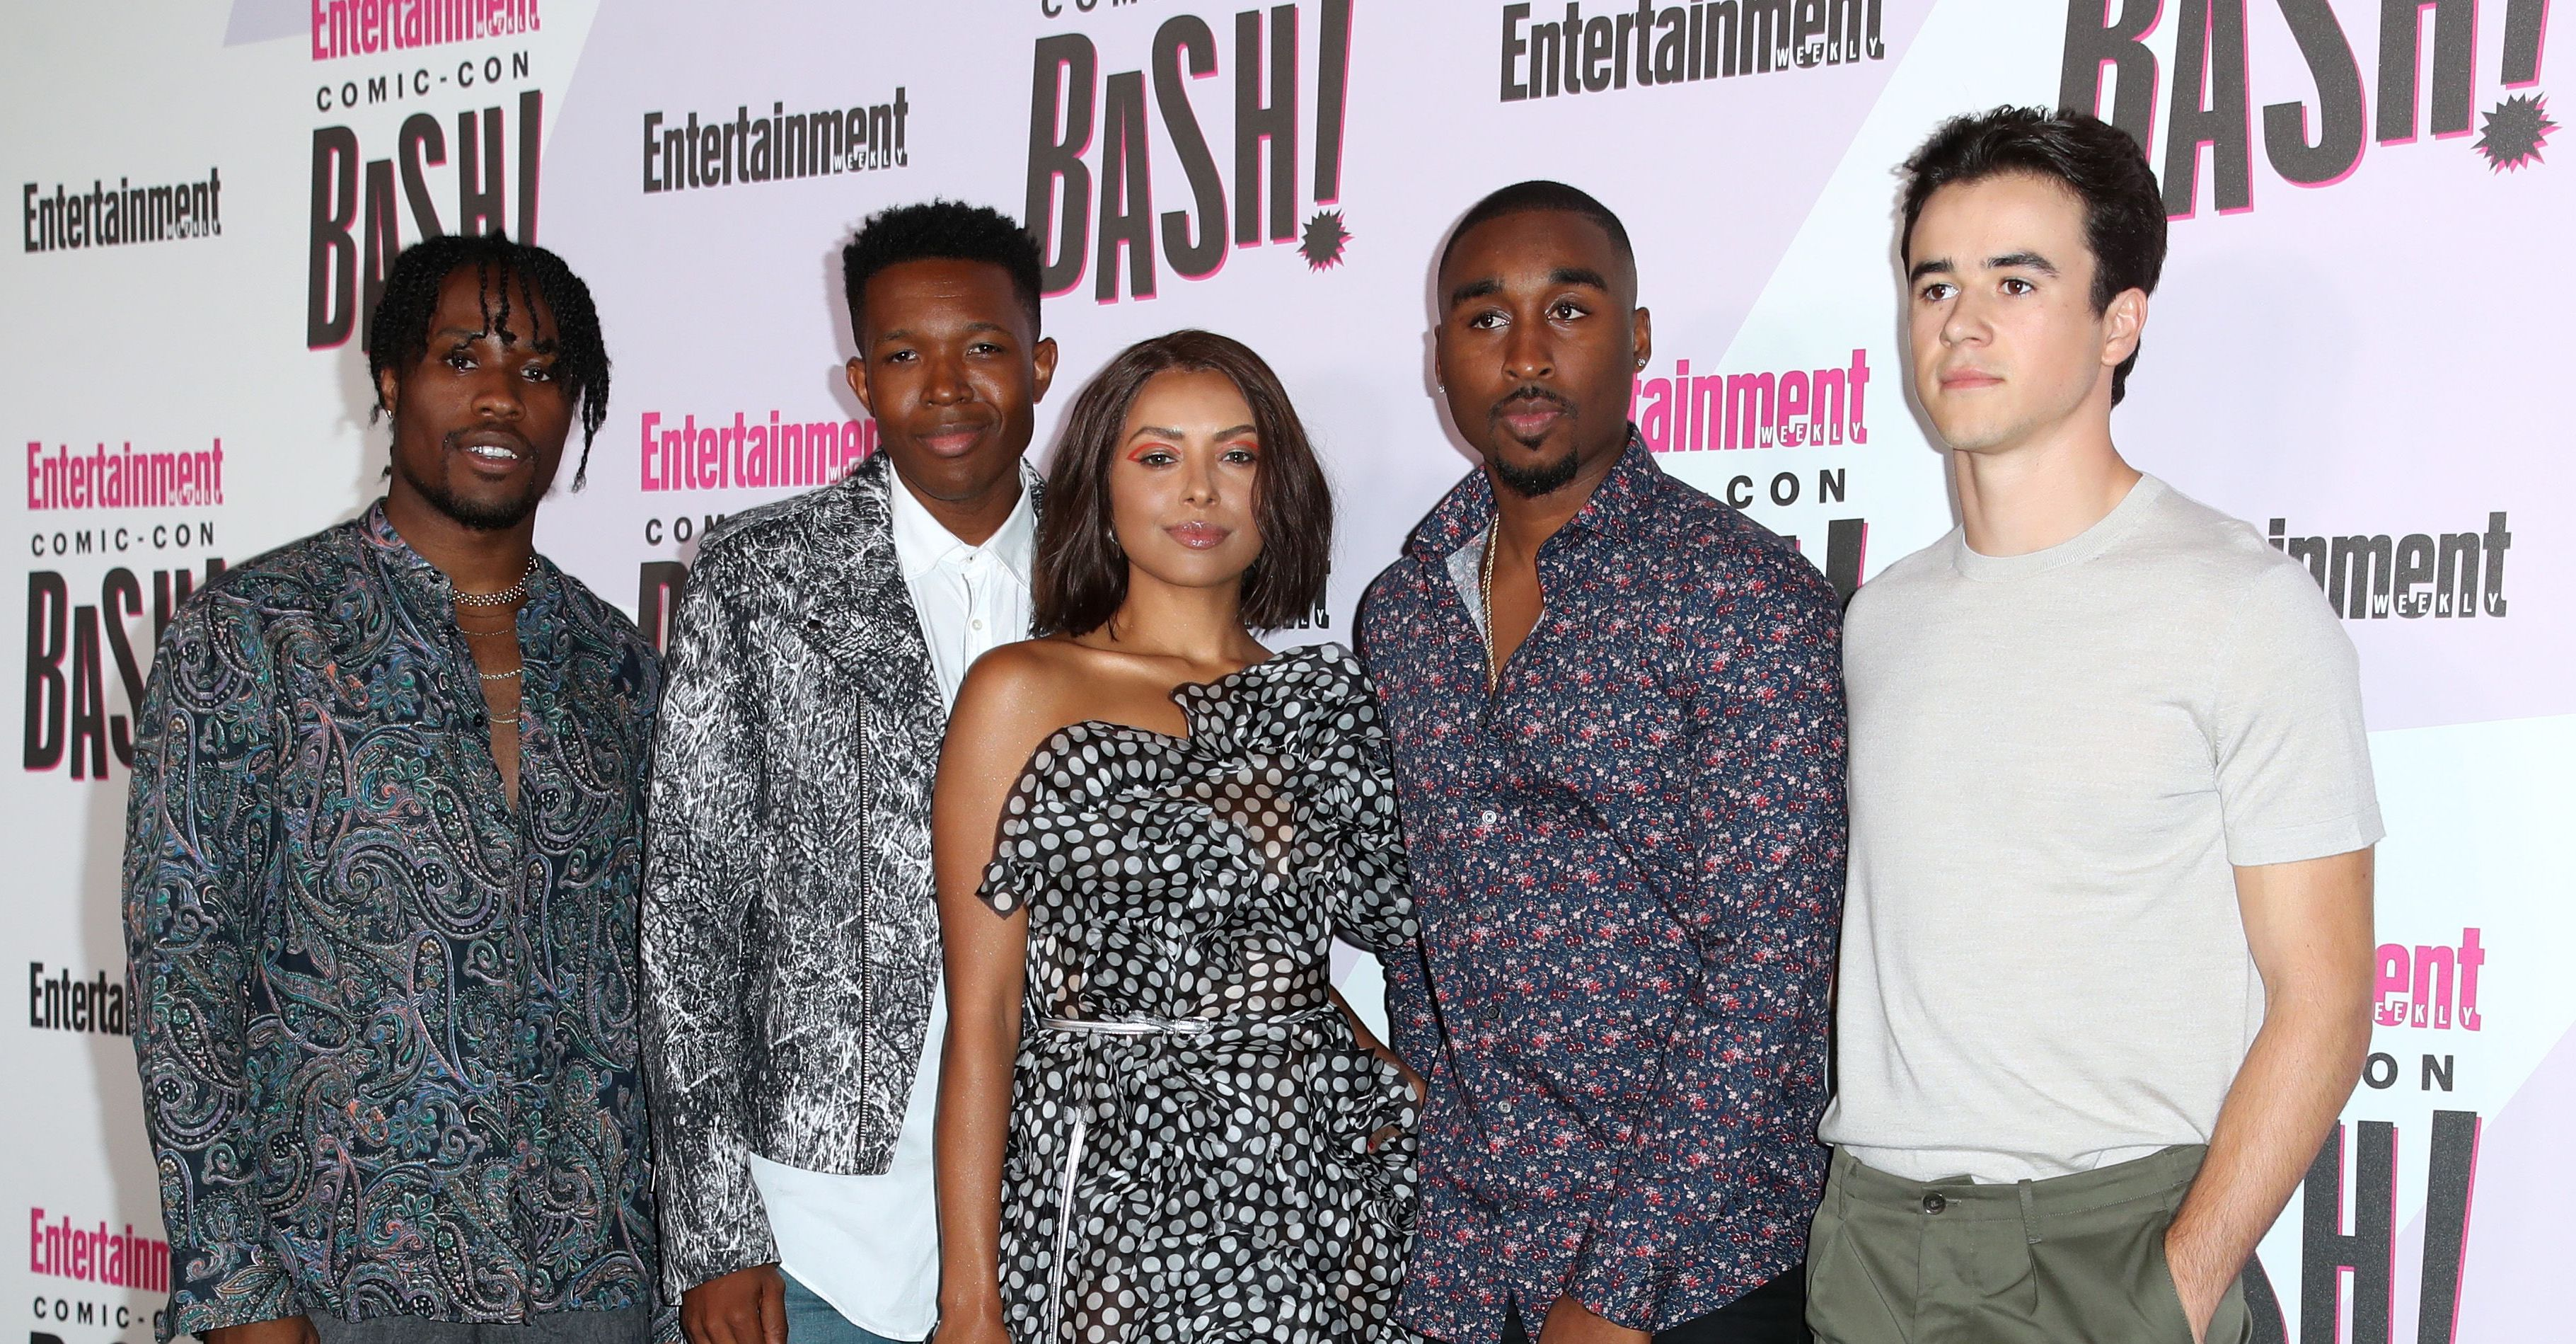 Shameik Moore, Kat Graham, Demetrius Shipp Jr... and guestsEntertainment Weekly party, Comic-Con International, San Diego, USA - 21 Jul 2018